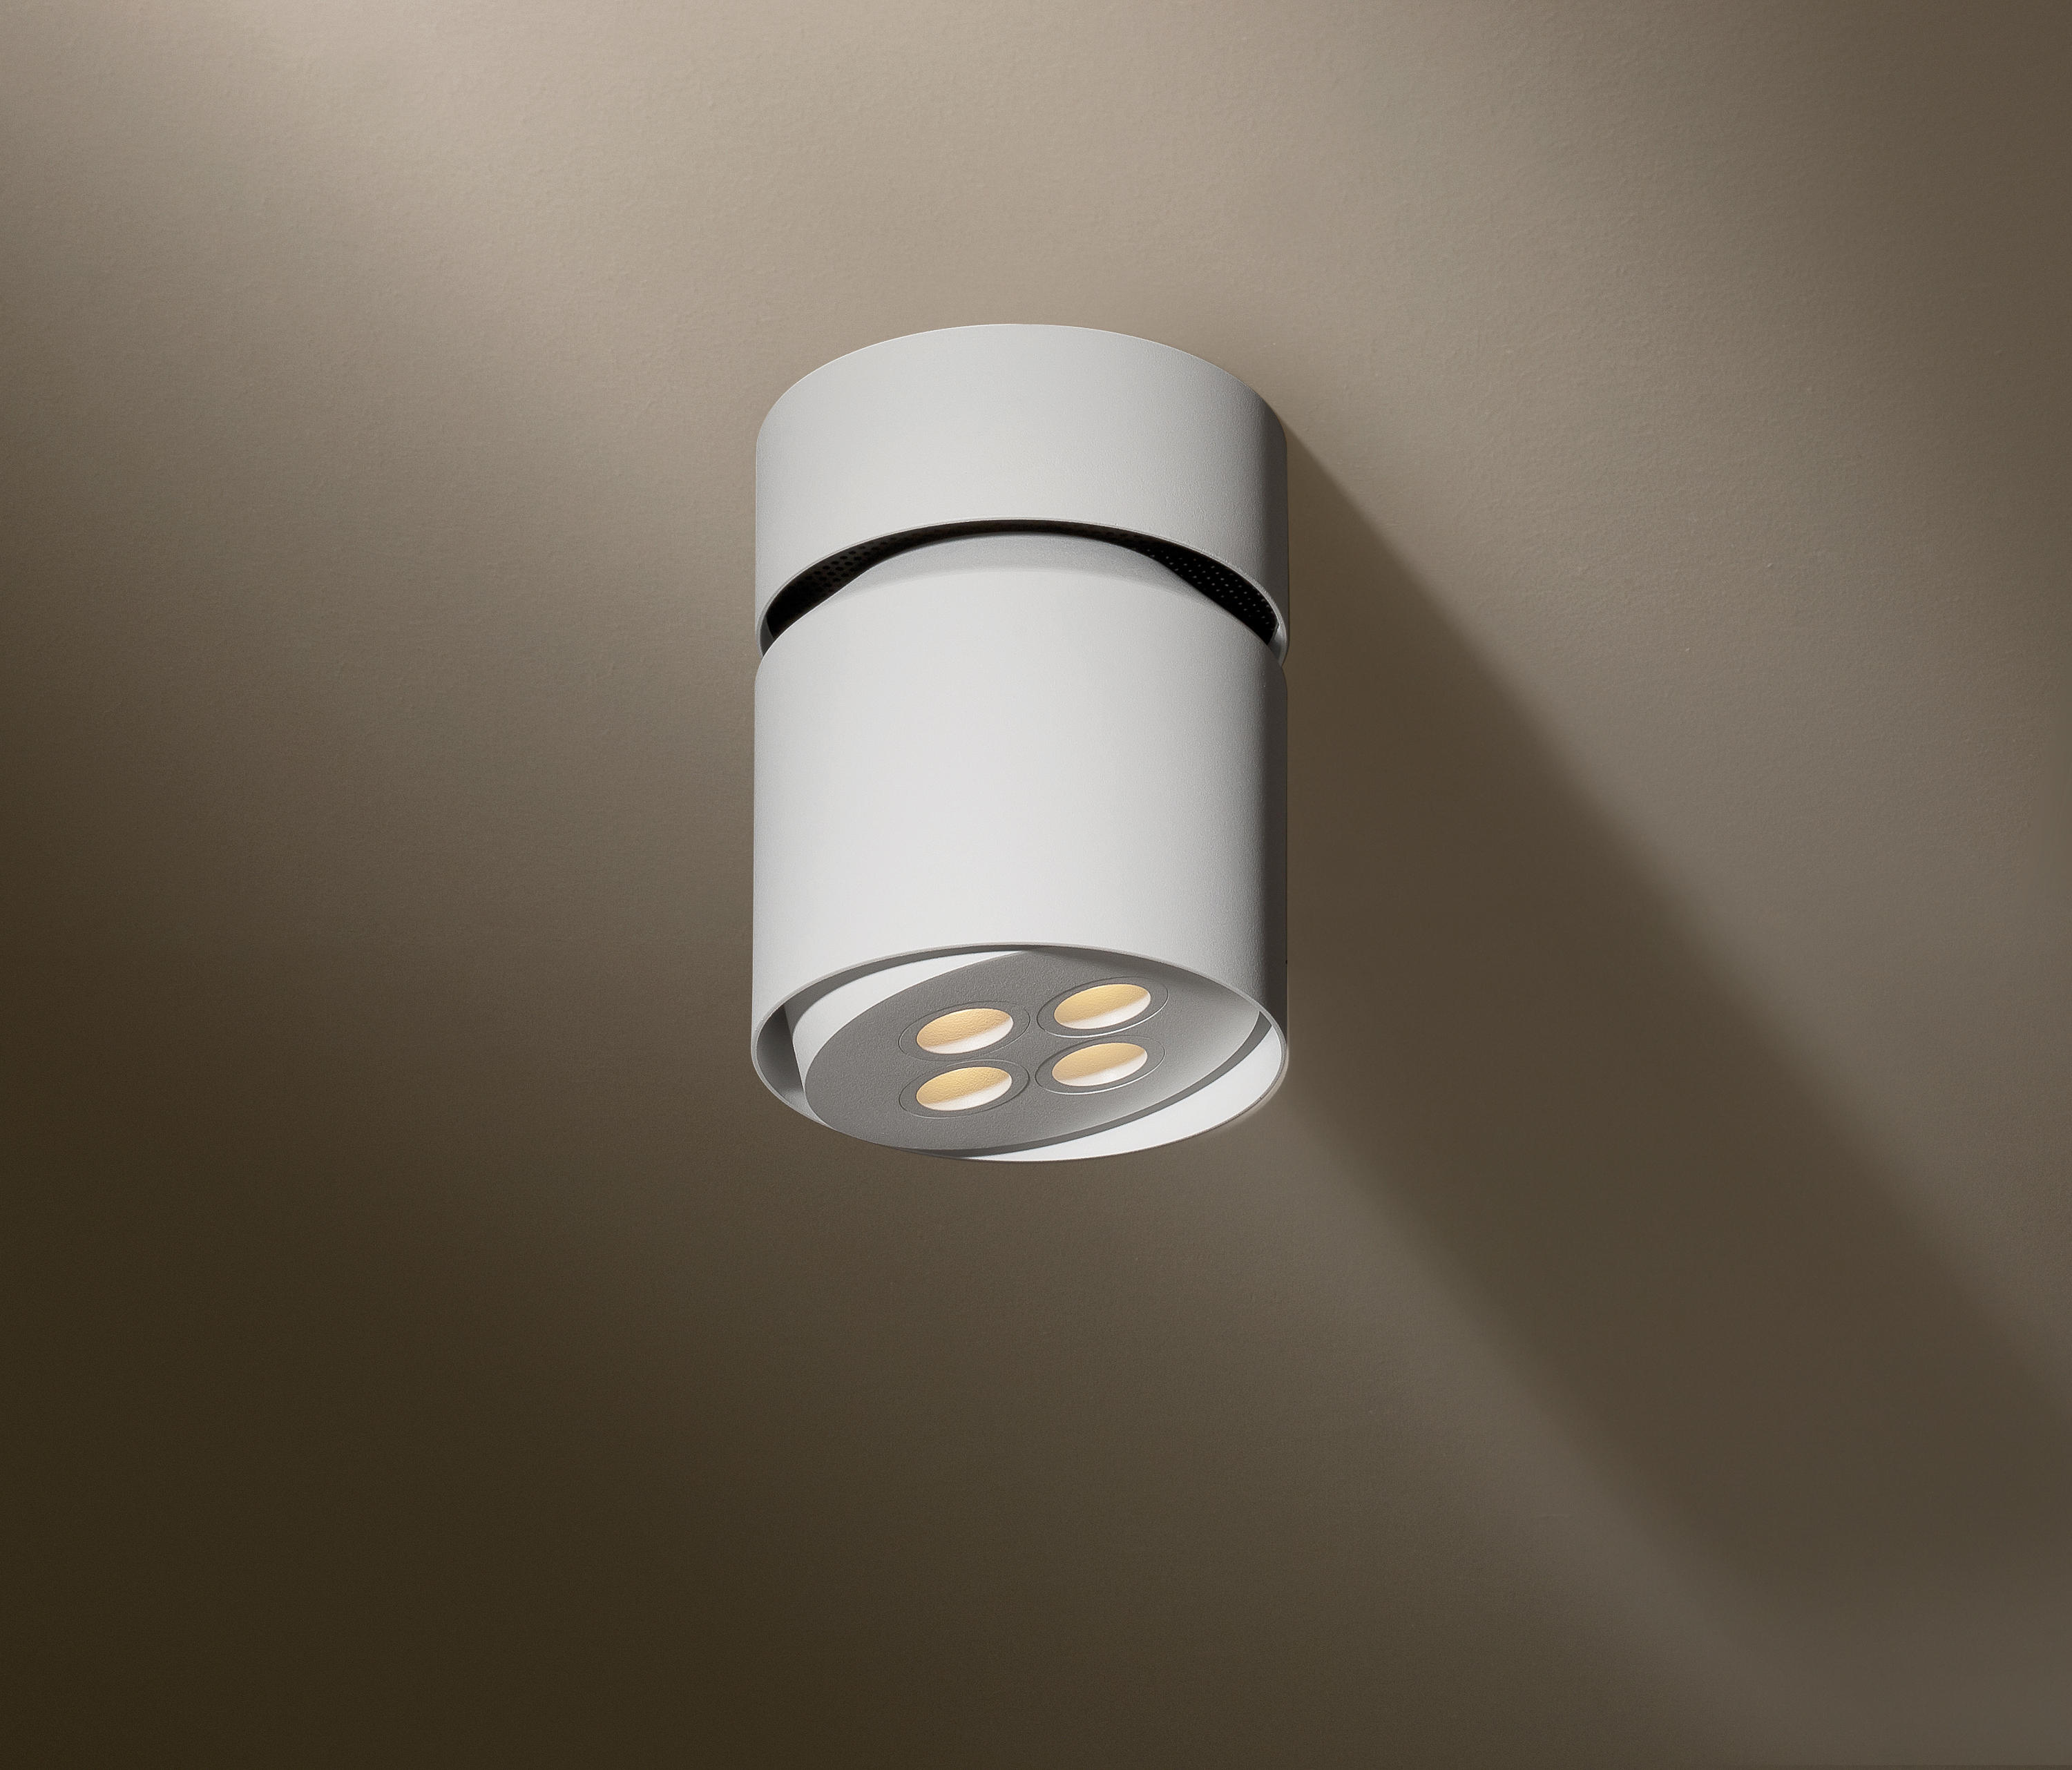 Thor PASCAL by TAL   General lighting & THOR PASCAL - General lighting from TAL   Architonic azcodes.com